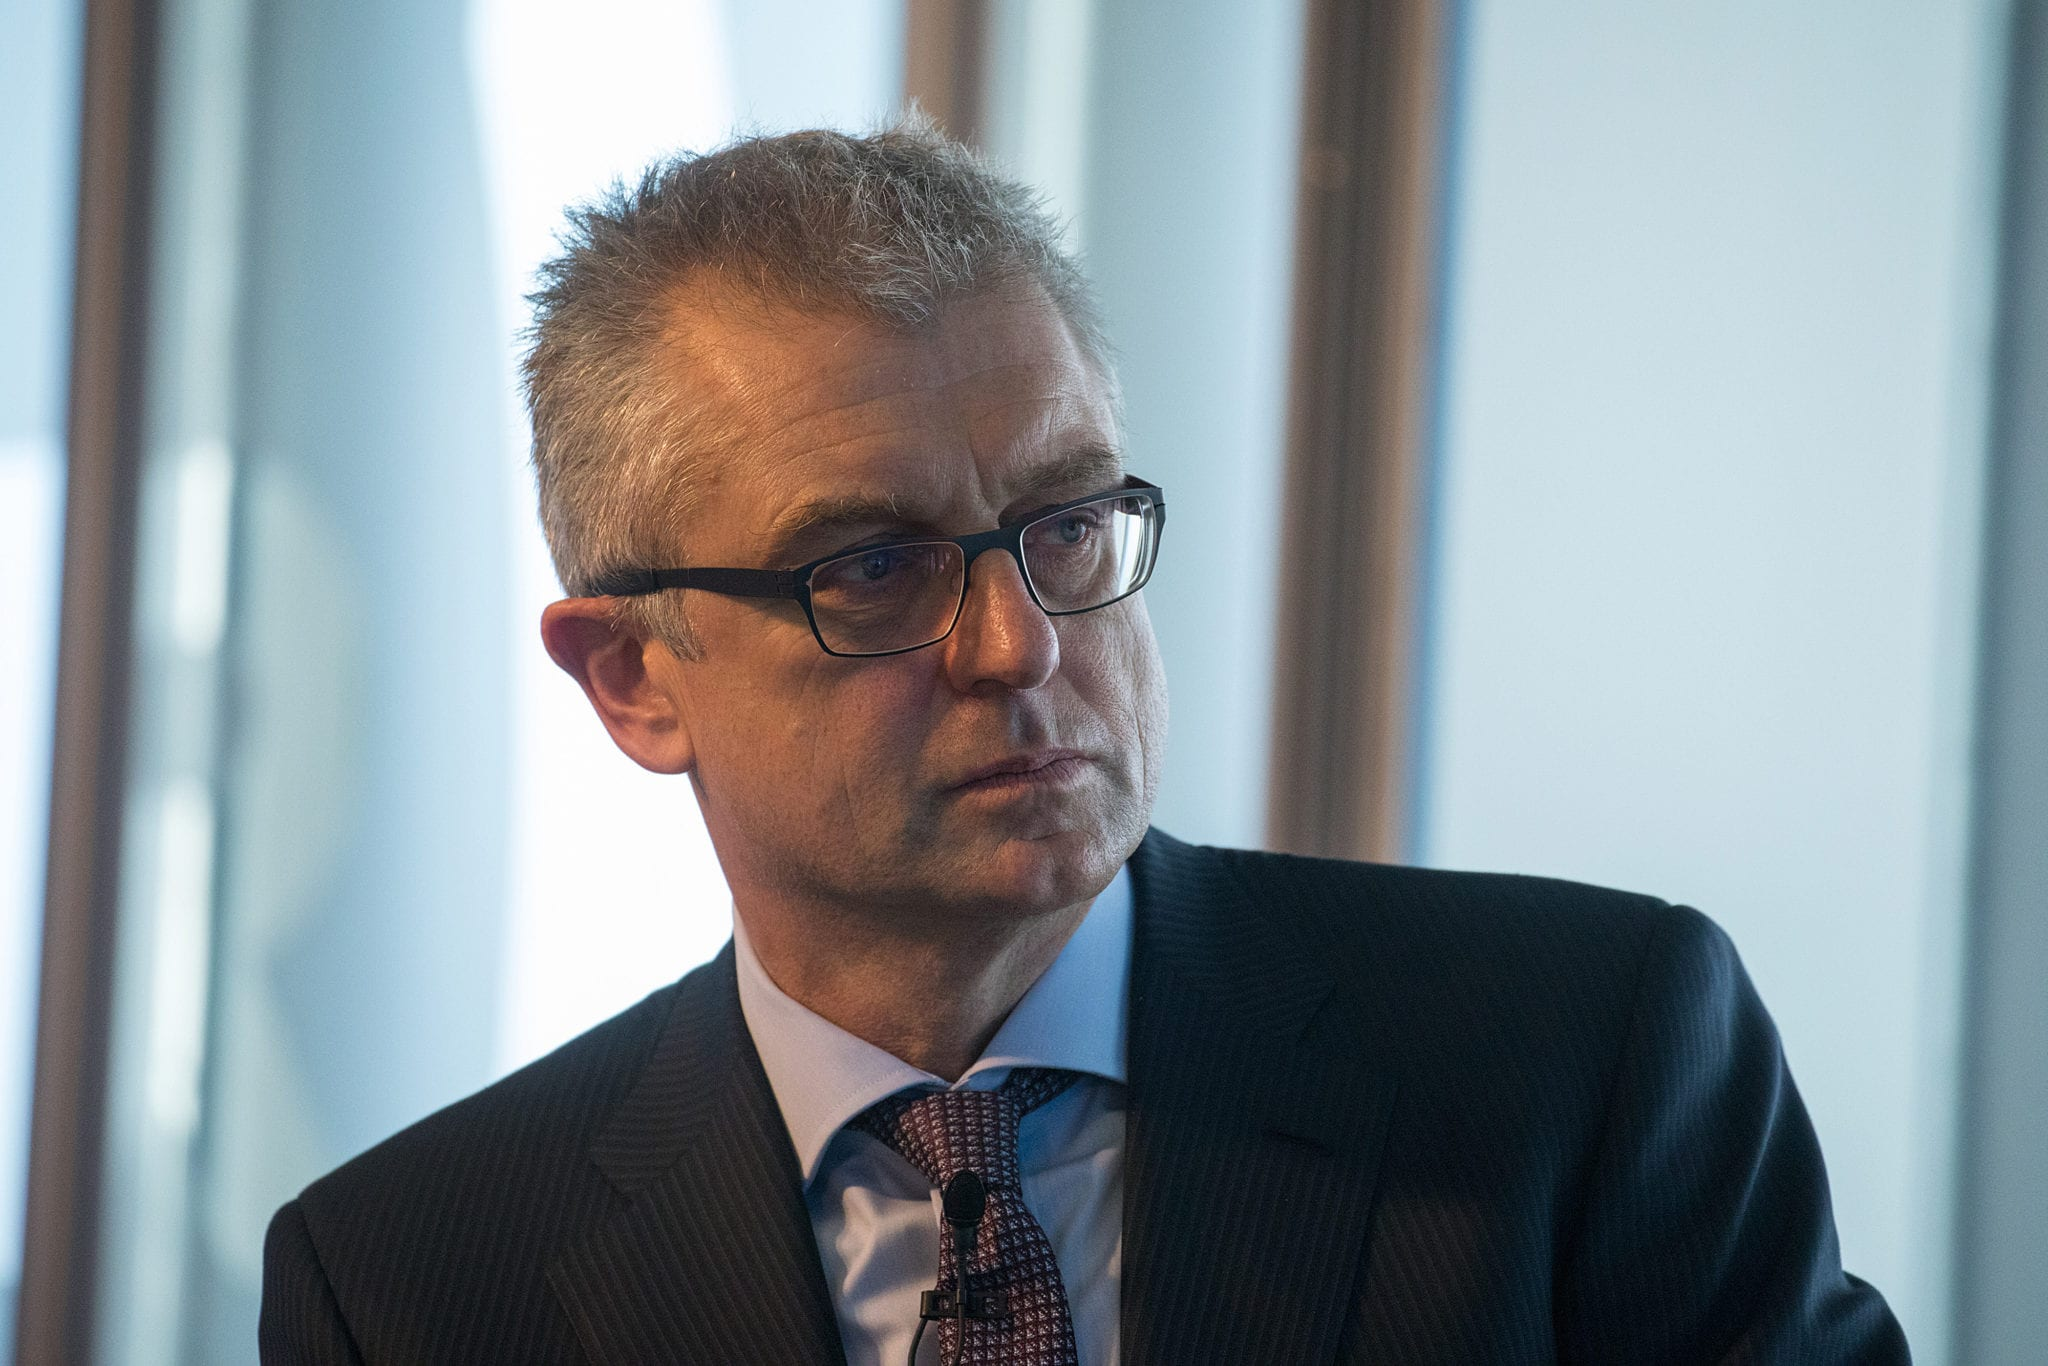 Bayer hands over a big drug R&D operation to CRO amid an ongoing restructuring effort